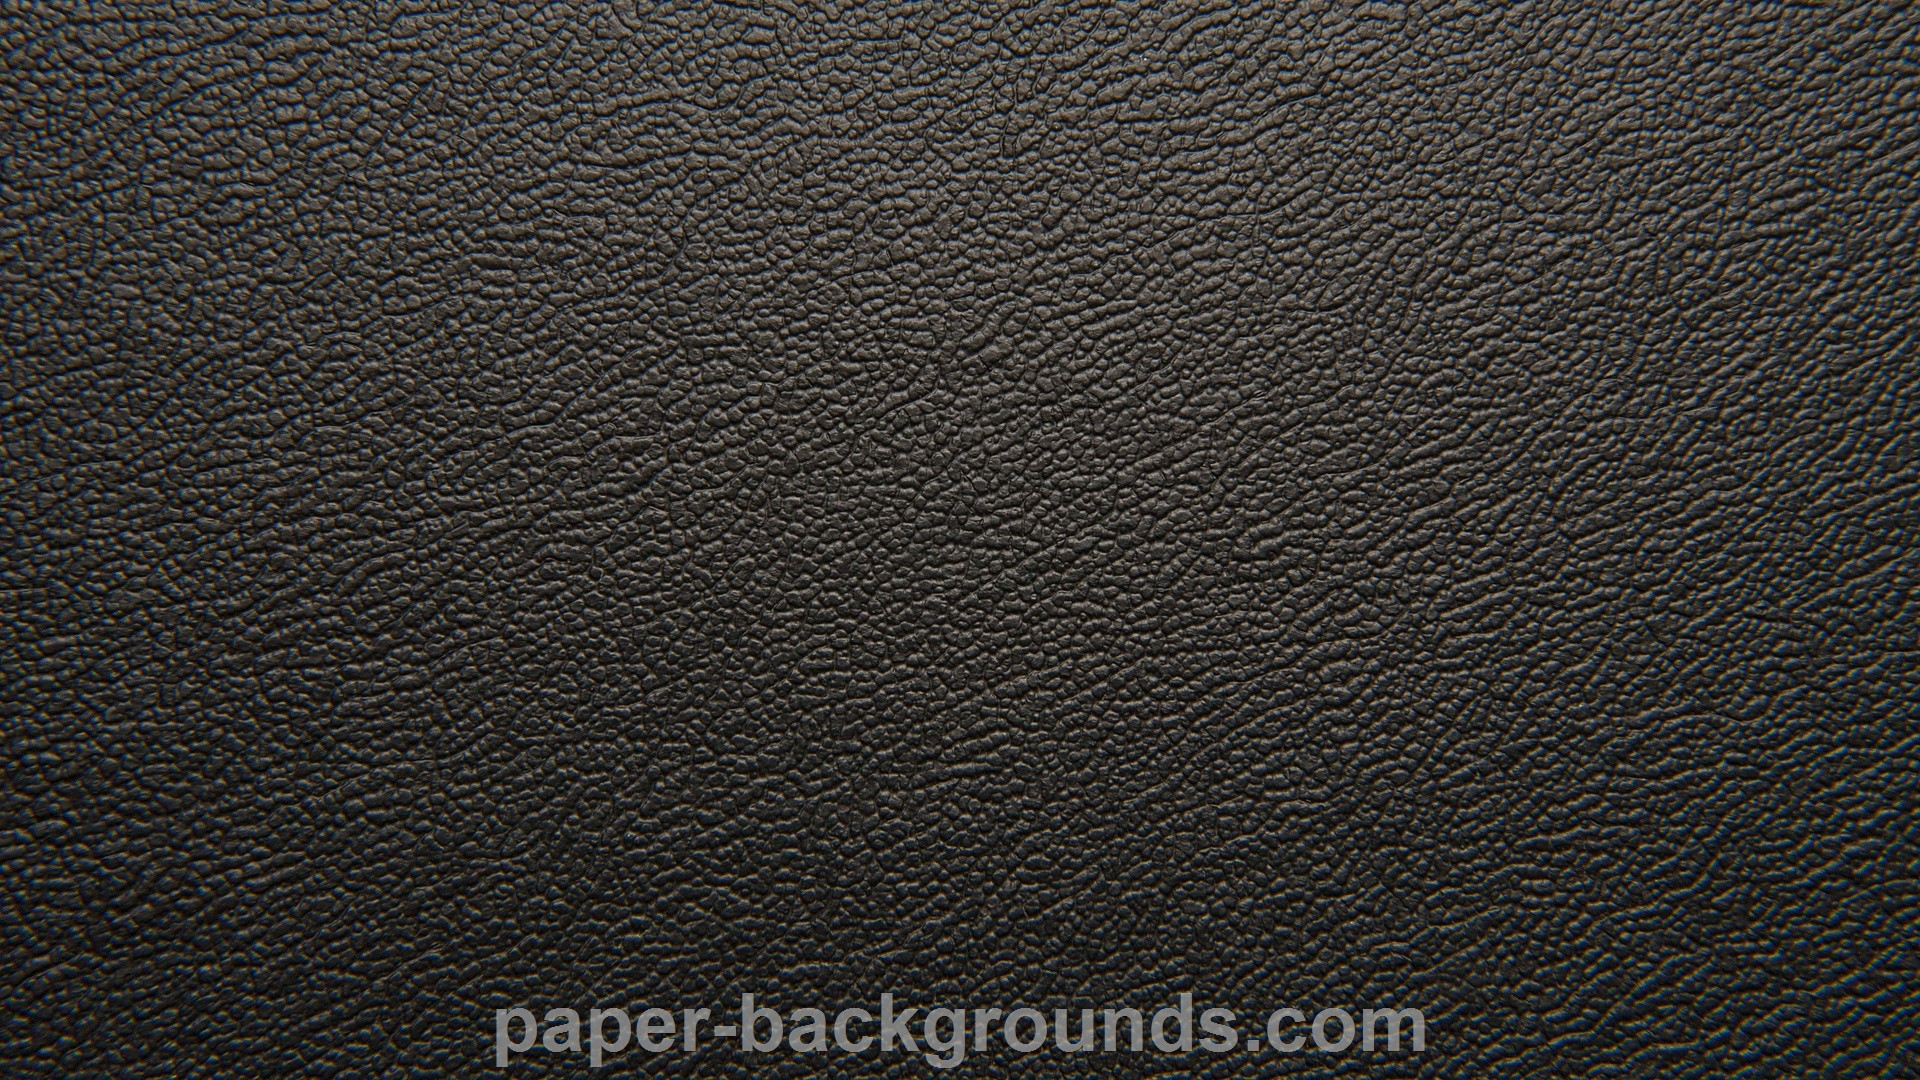 1920x1080 Black Leather Wallpaper  Black, Leather